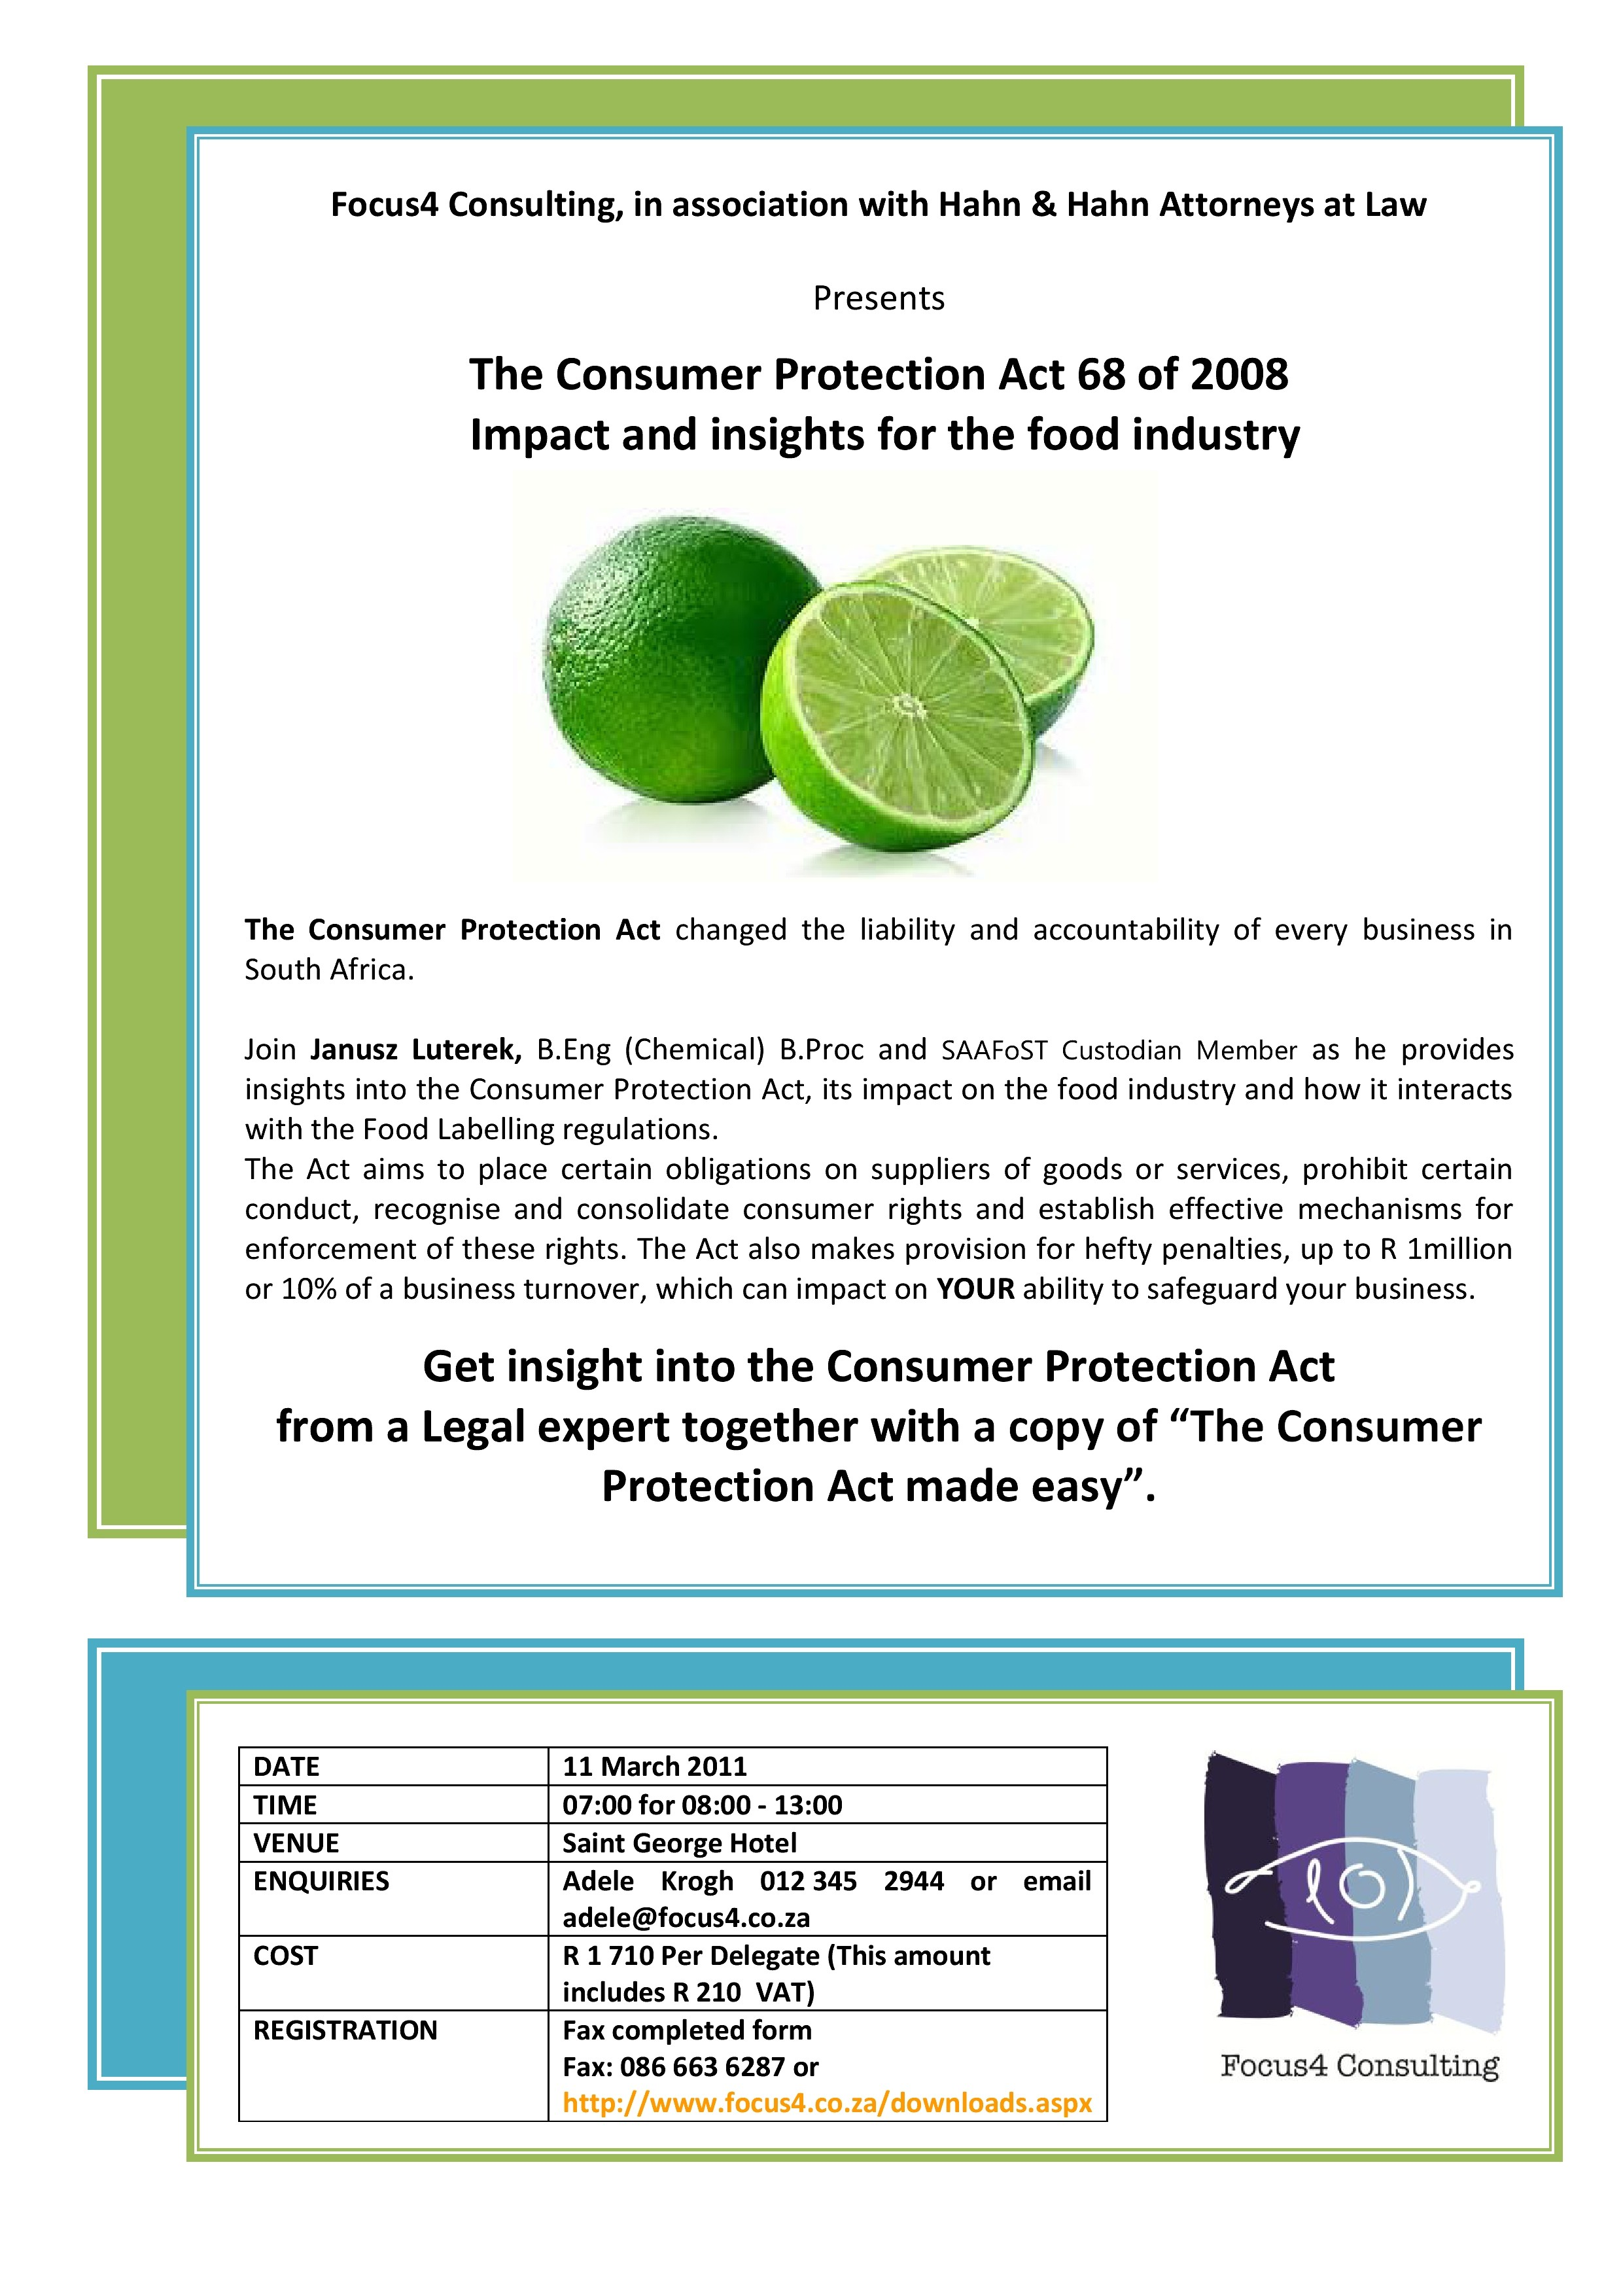 consumer protection act conference registration-001